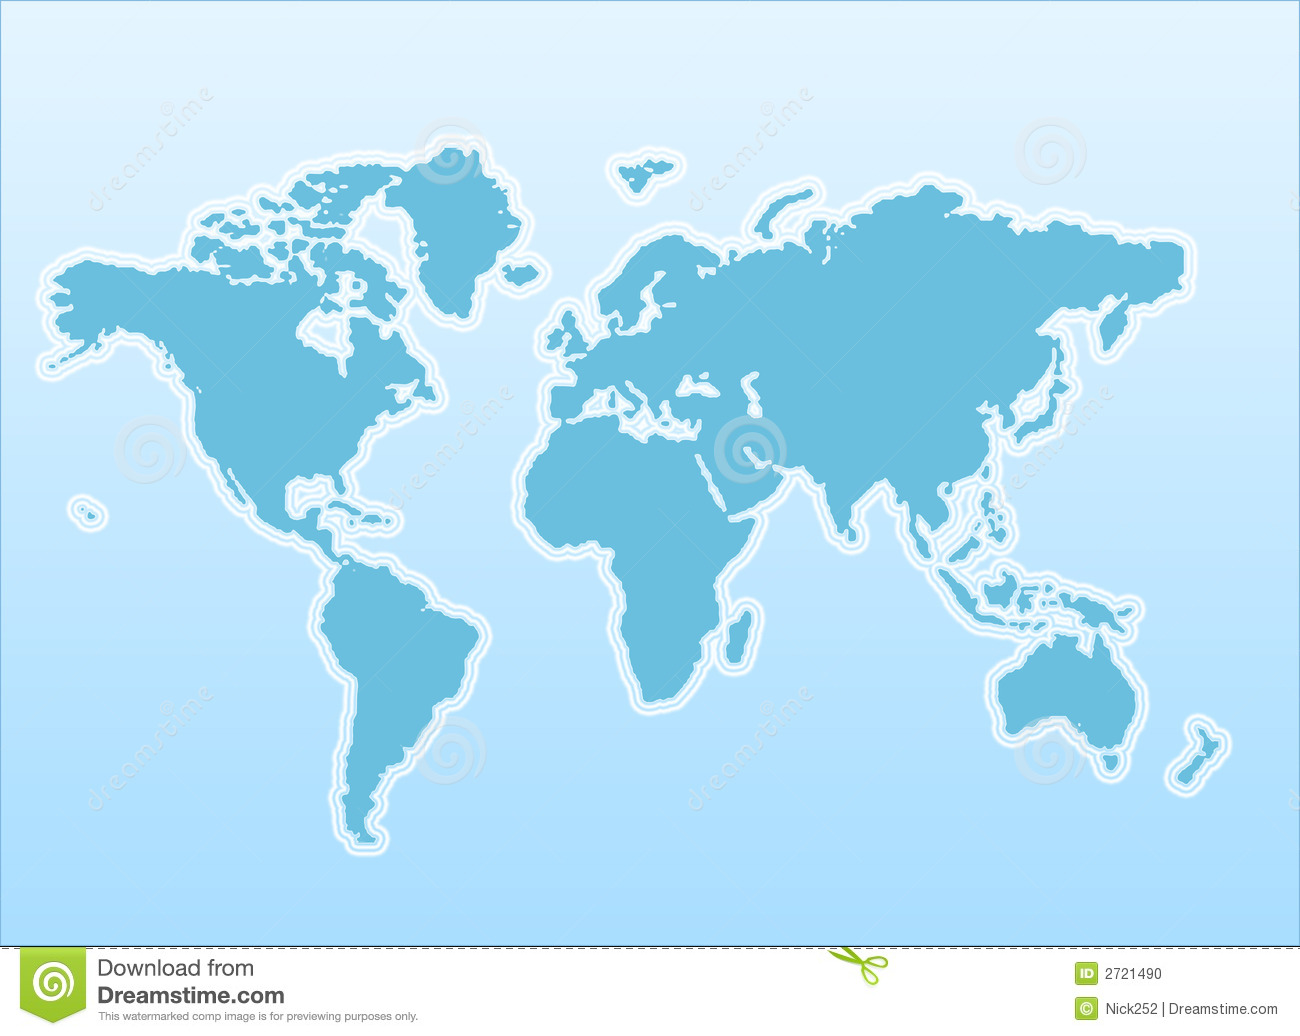 World map on a blue background stock illustration illustration of download world map on a blue background stock illustration illustration of backdrop light gumiabroncs Gallery